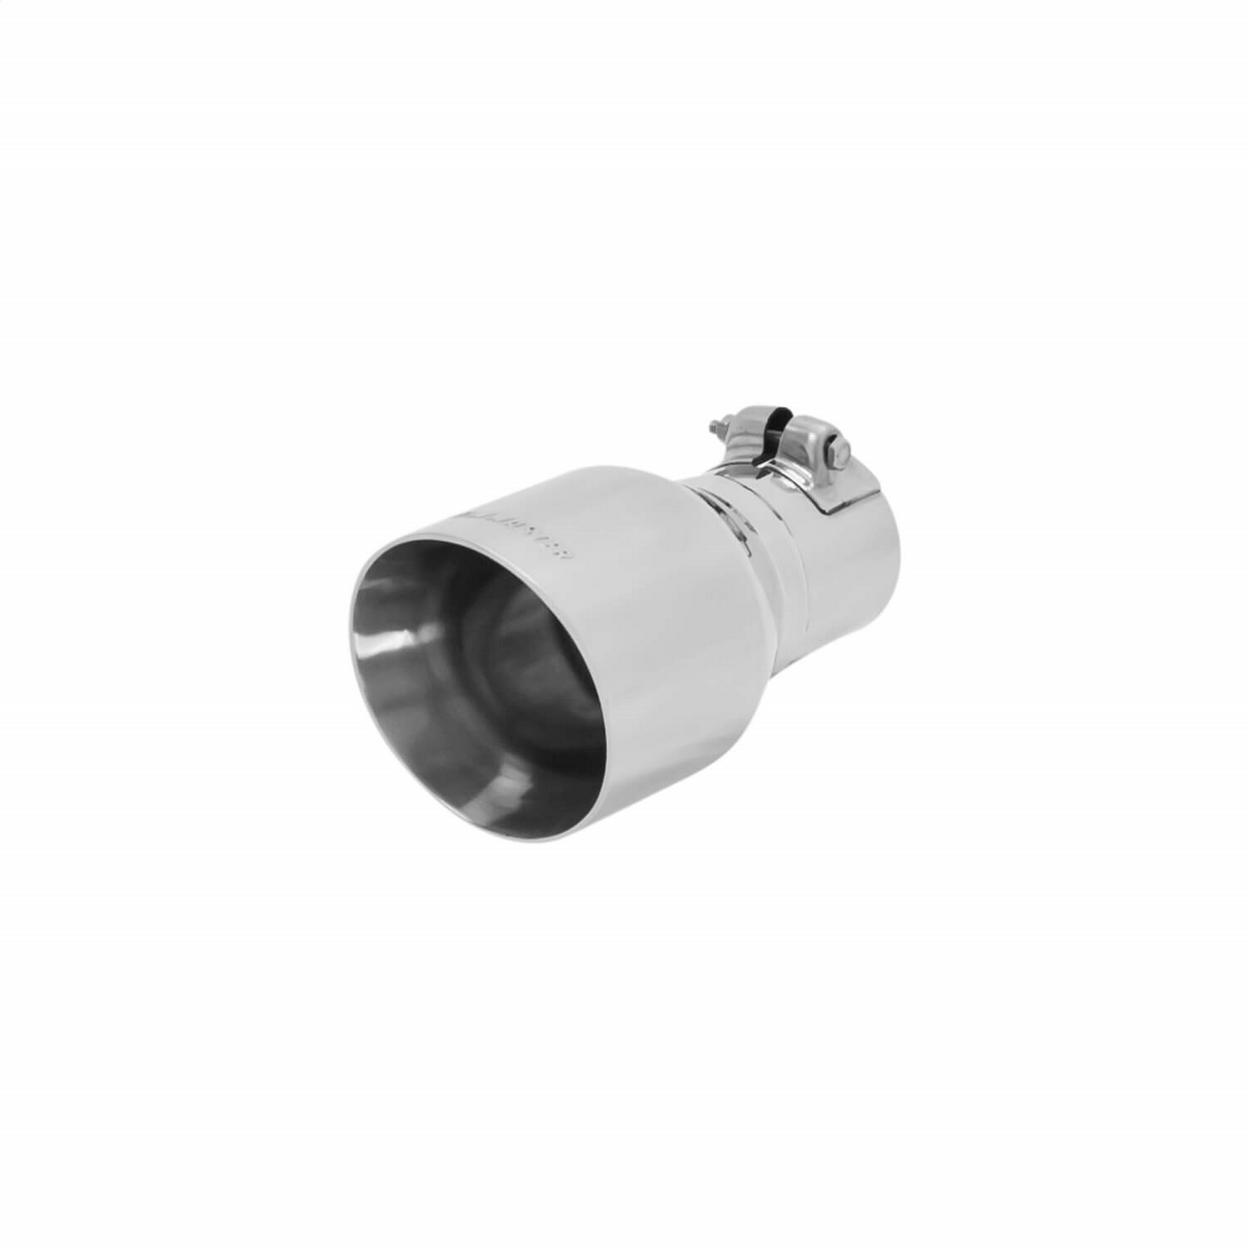 Exhaust Tip - 4.00 in. Angle Cut Polished SS Fits 2.50 in. Tubing - Clamp on